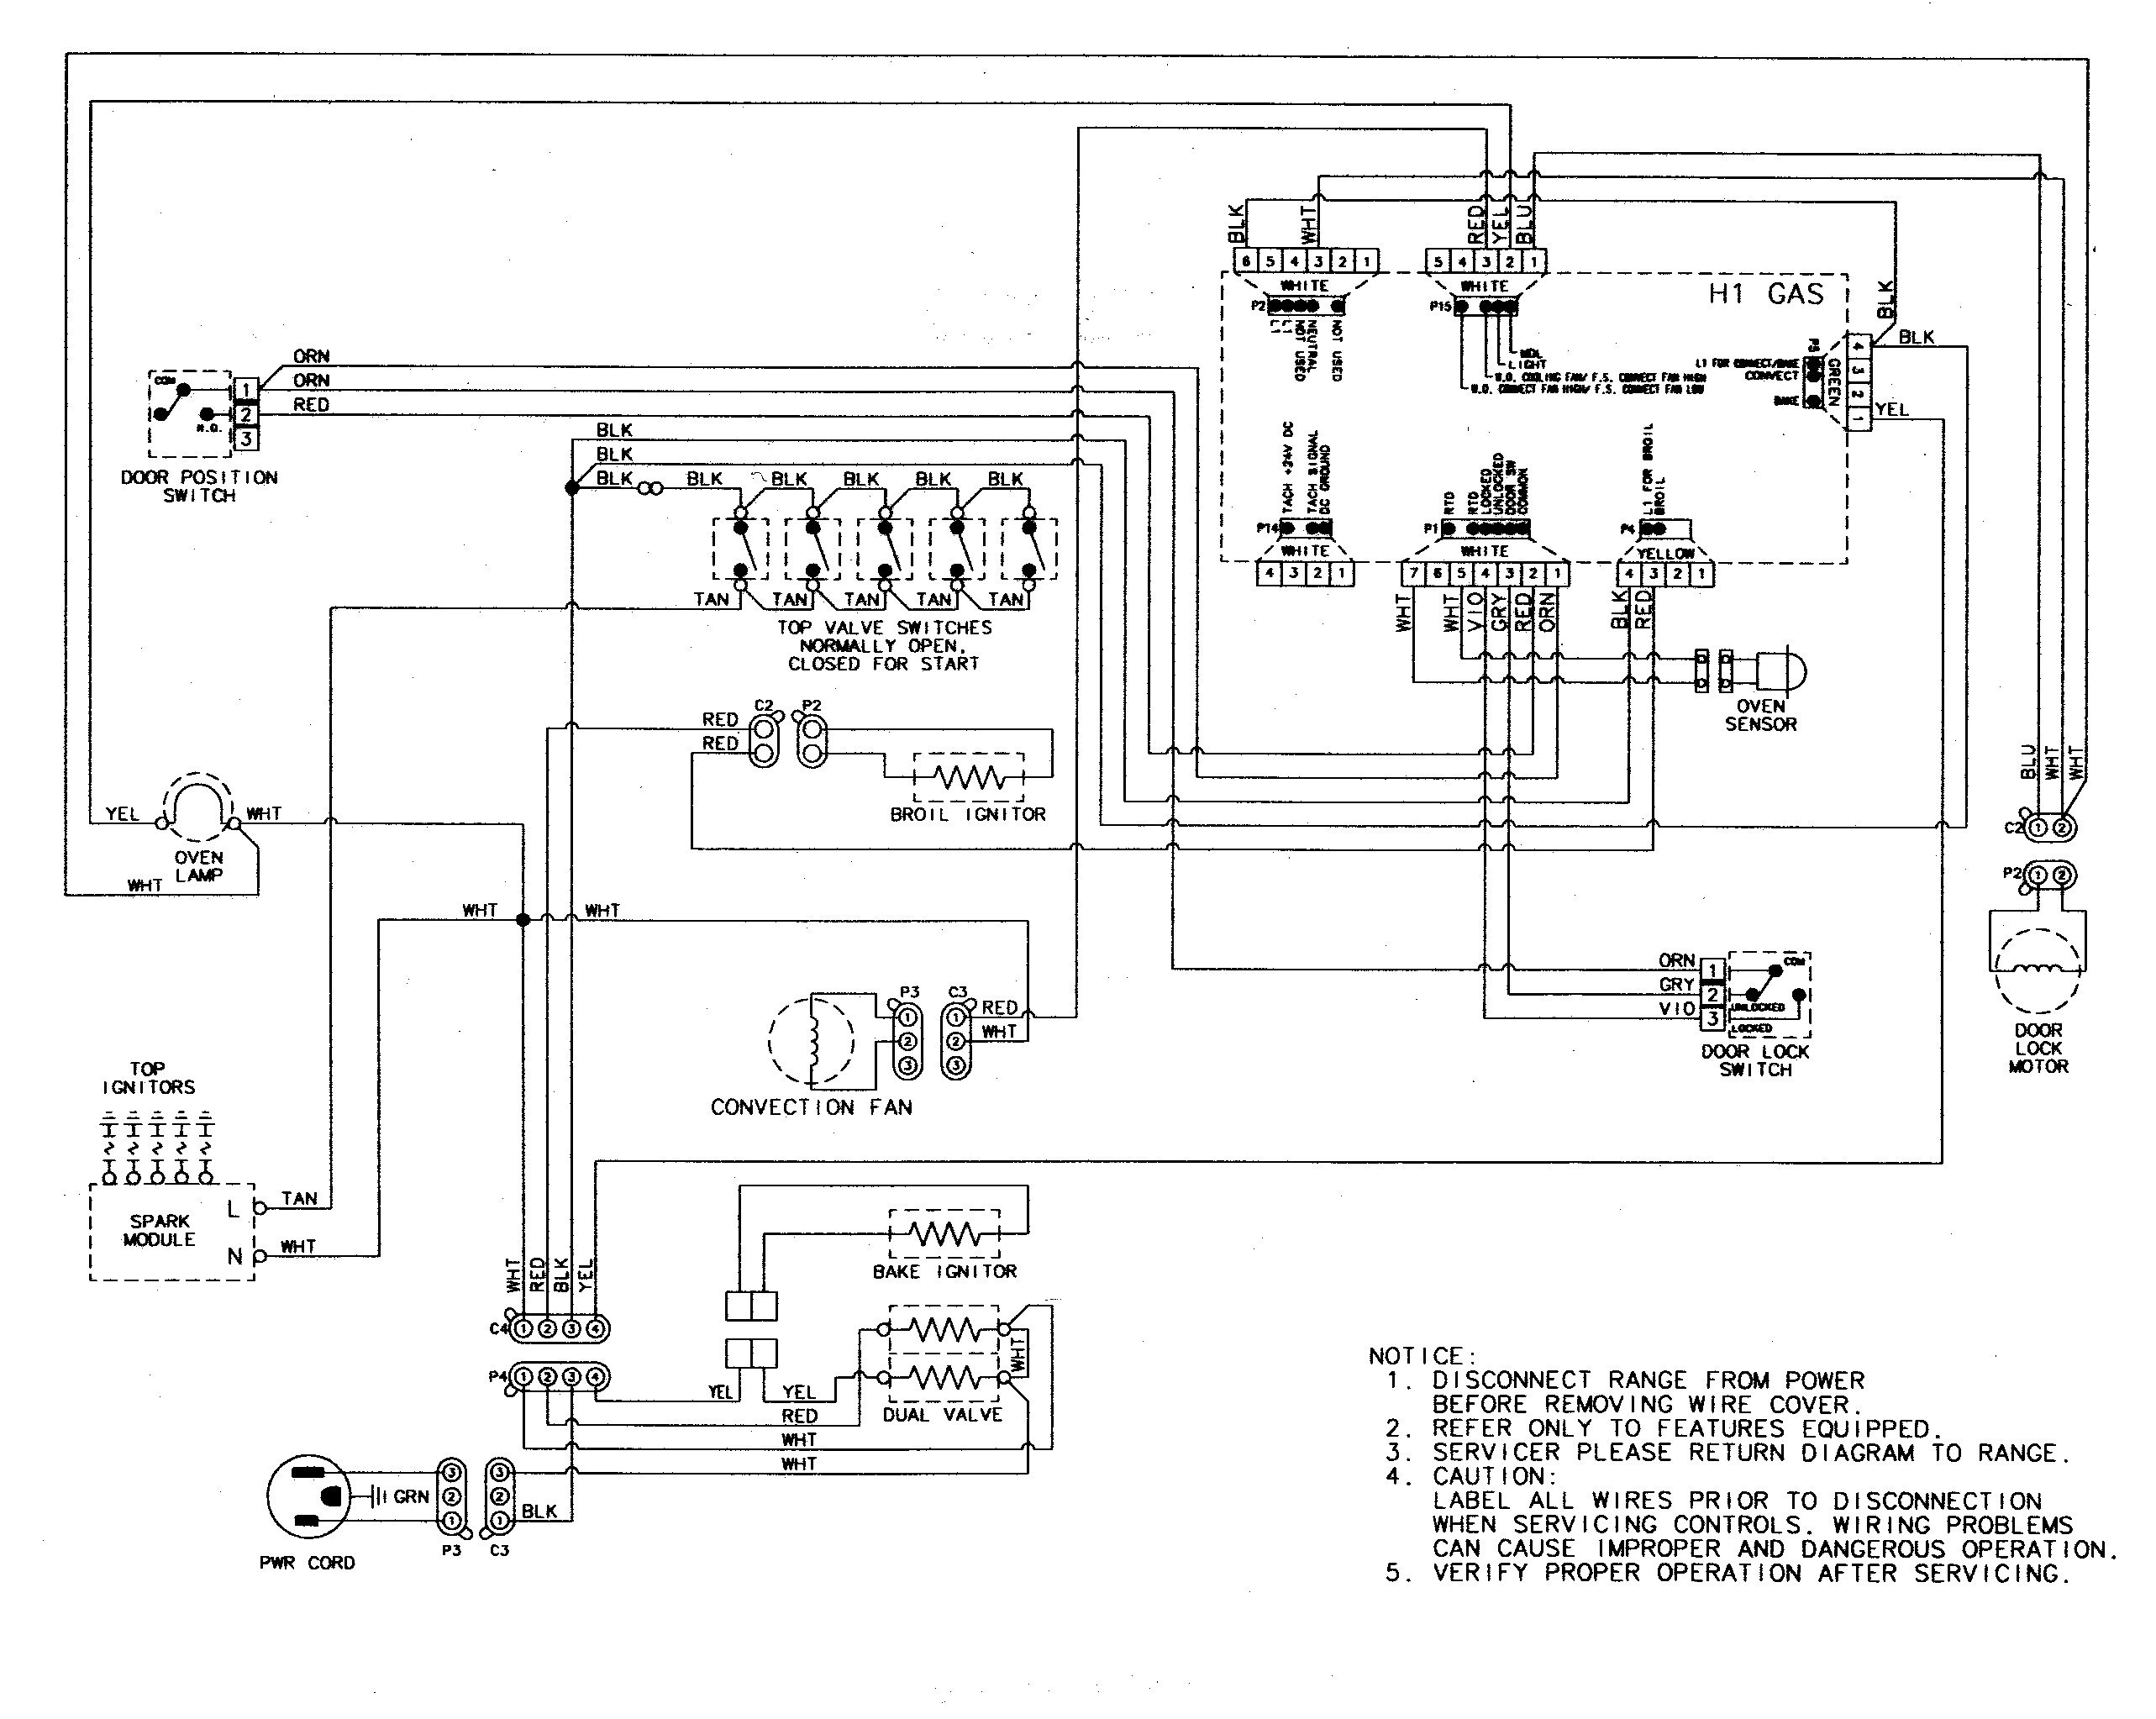 Whirlpool Dryer Wiring Schematic